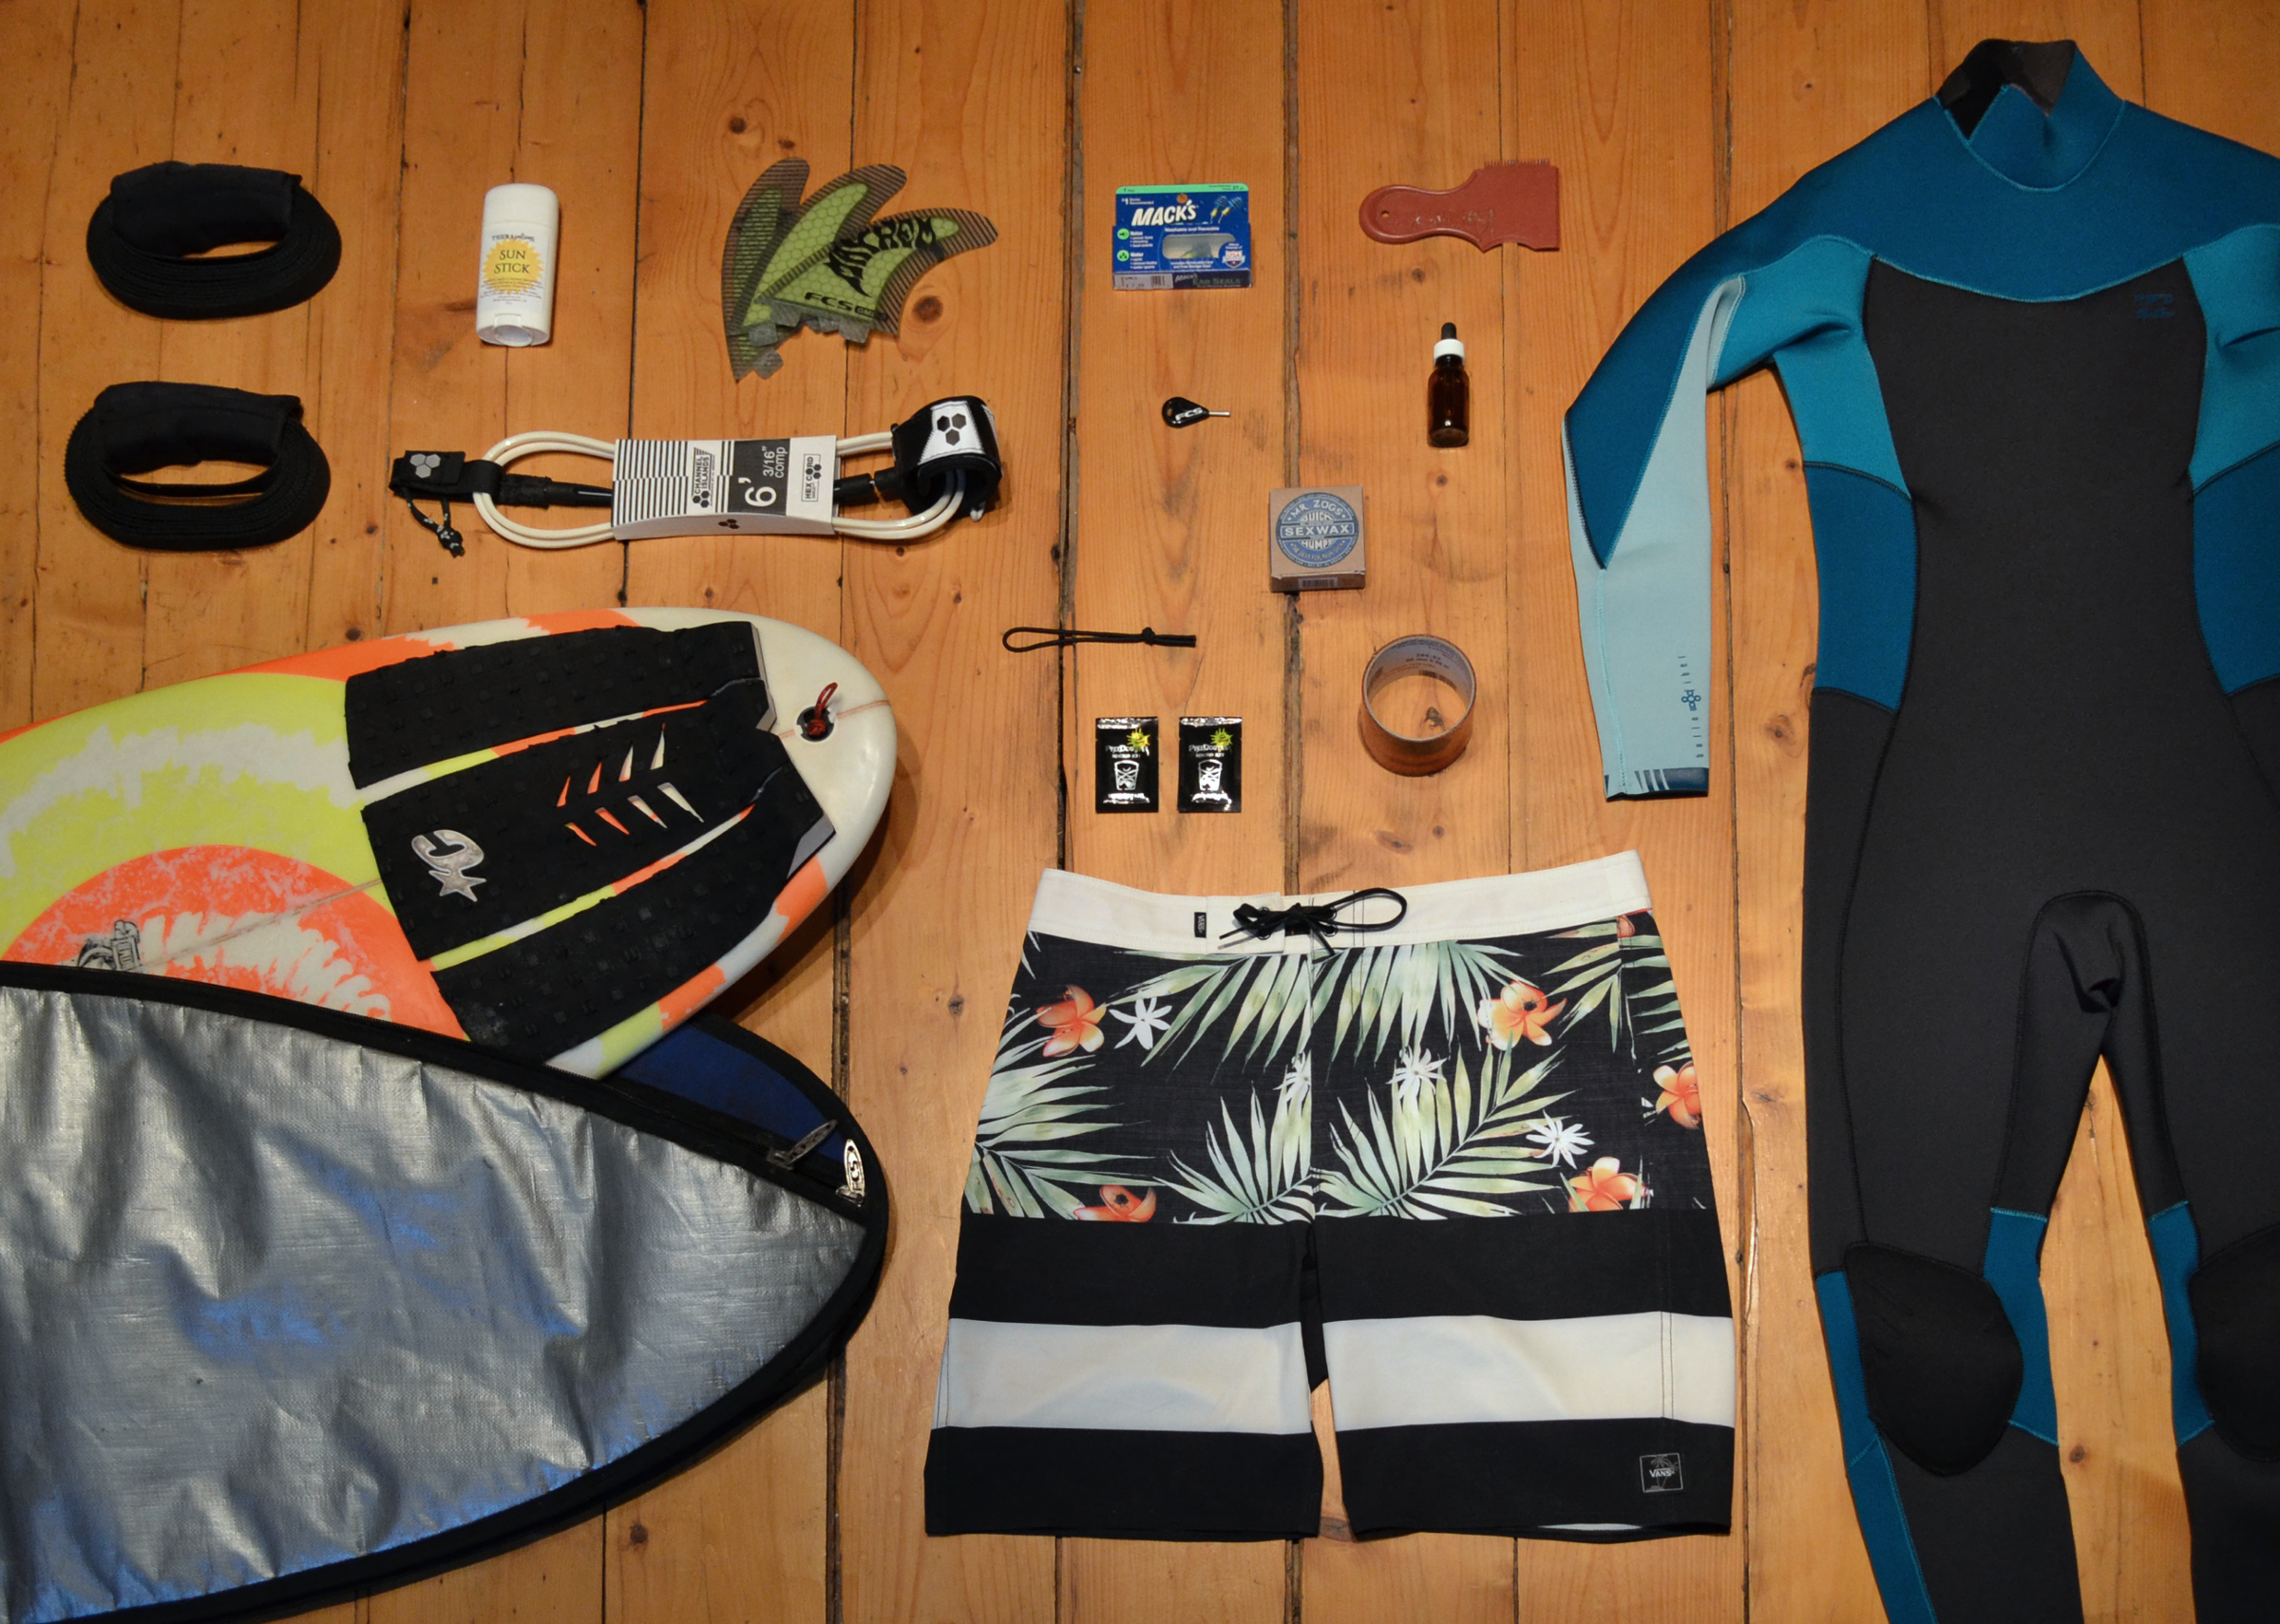 5de33c3cc256 Don't Leave Home Without It: Gear Essentials for Your Remote Work Surf-trip